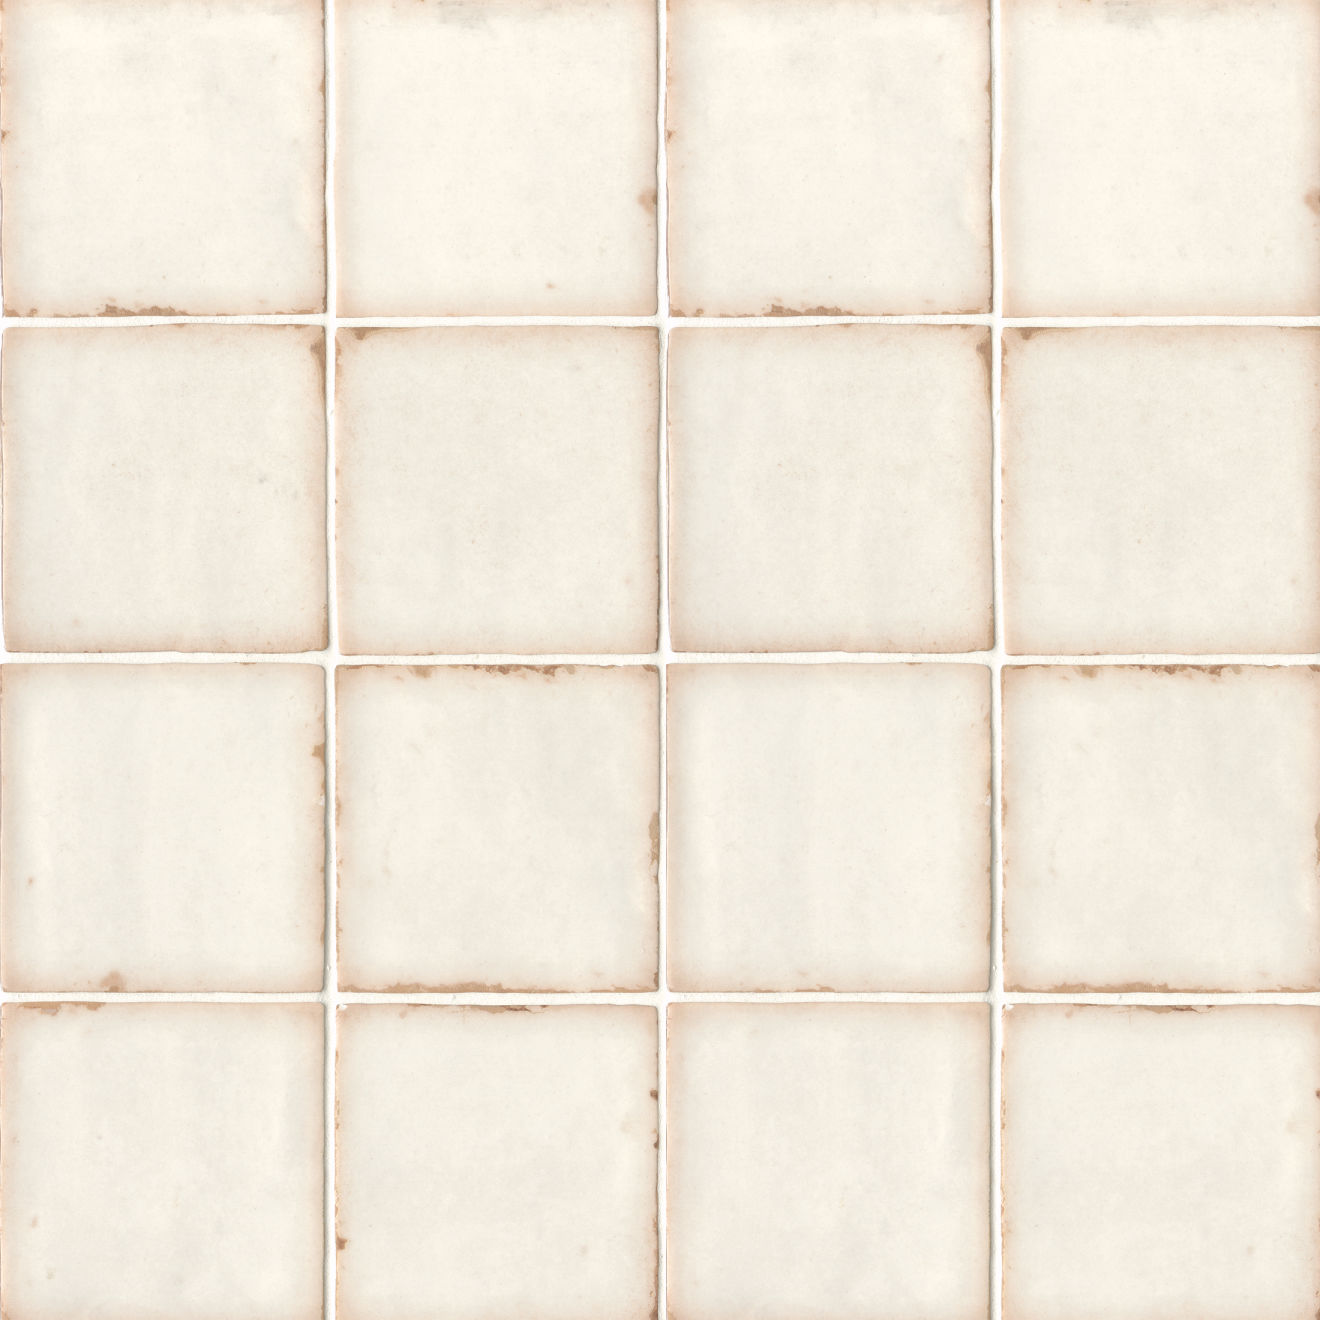 "Casablanca 5"" x 5"" Matte Ceramic Floor and Wall Tile in White"